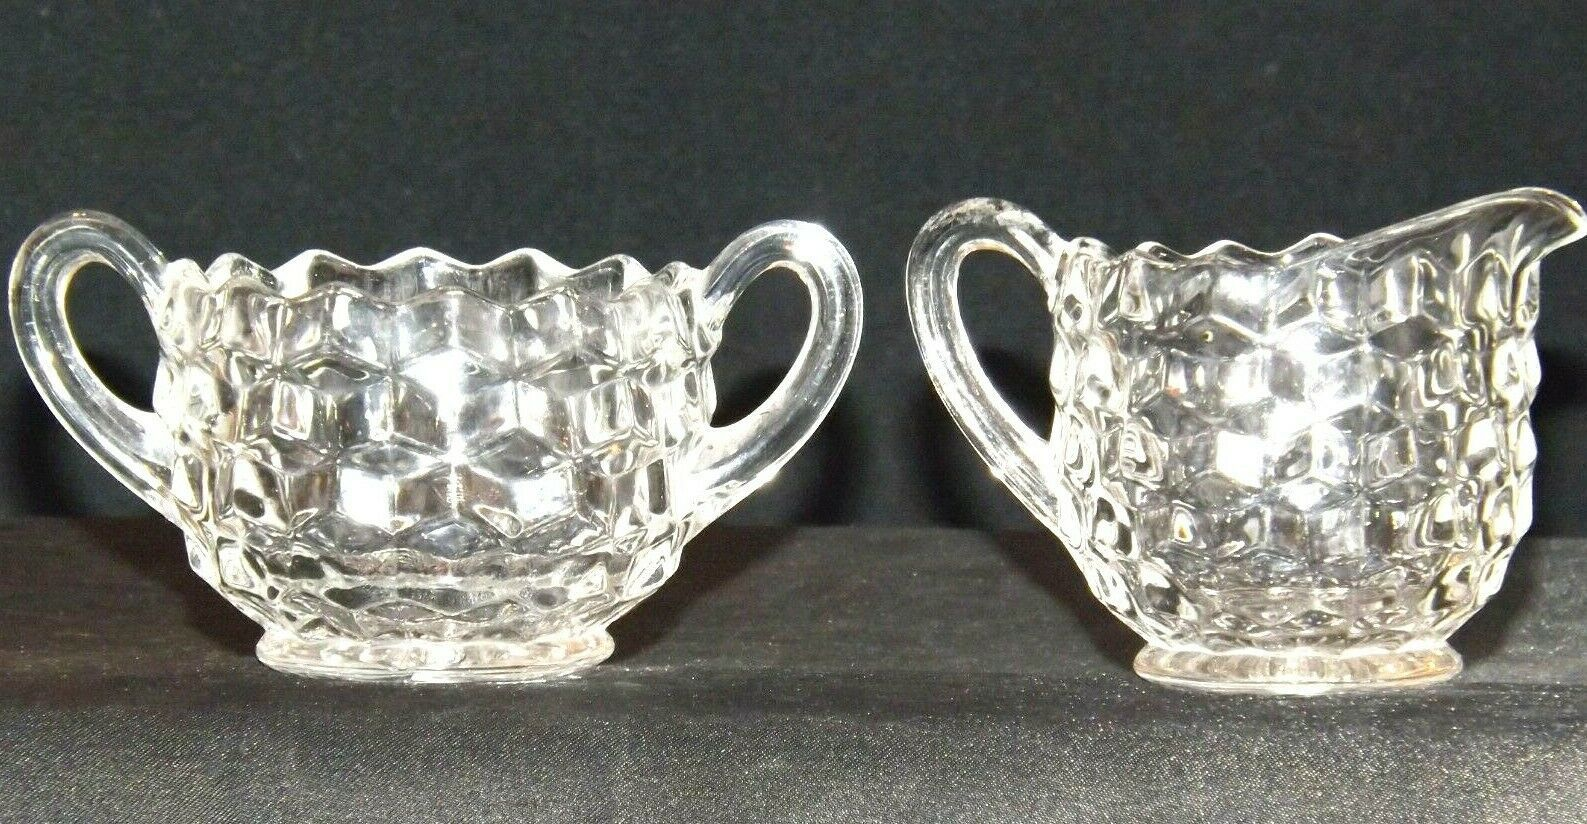 Waterford Cream and Sugar USA Pair AA19-LD11931 Vintage